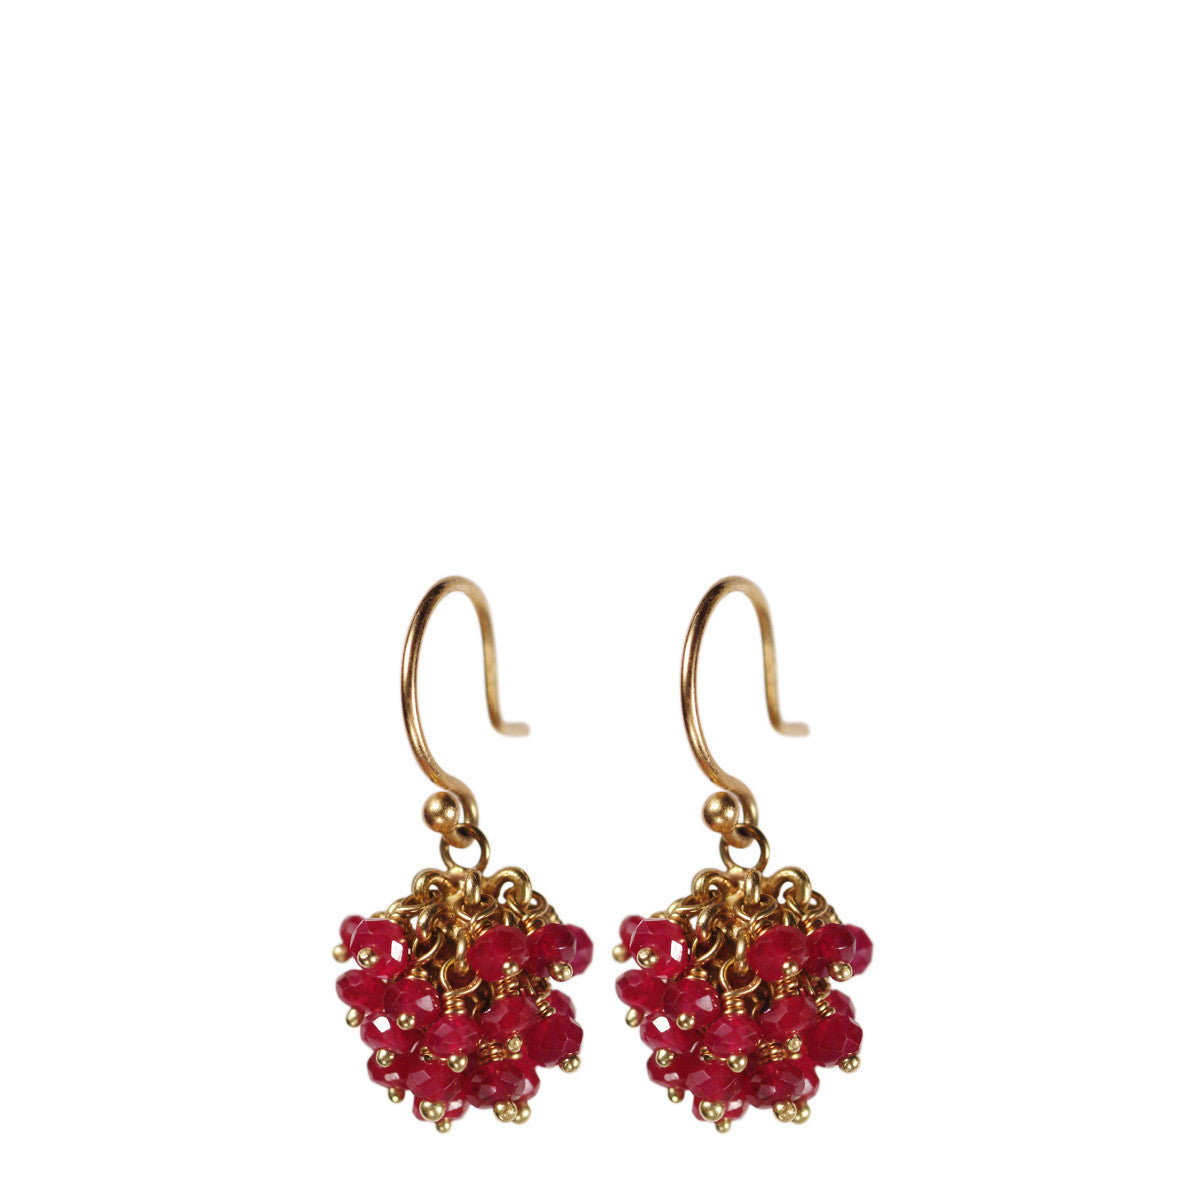 18K Gold All Ruby Bead Ball Earrings